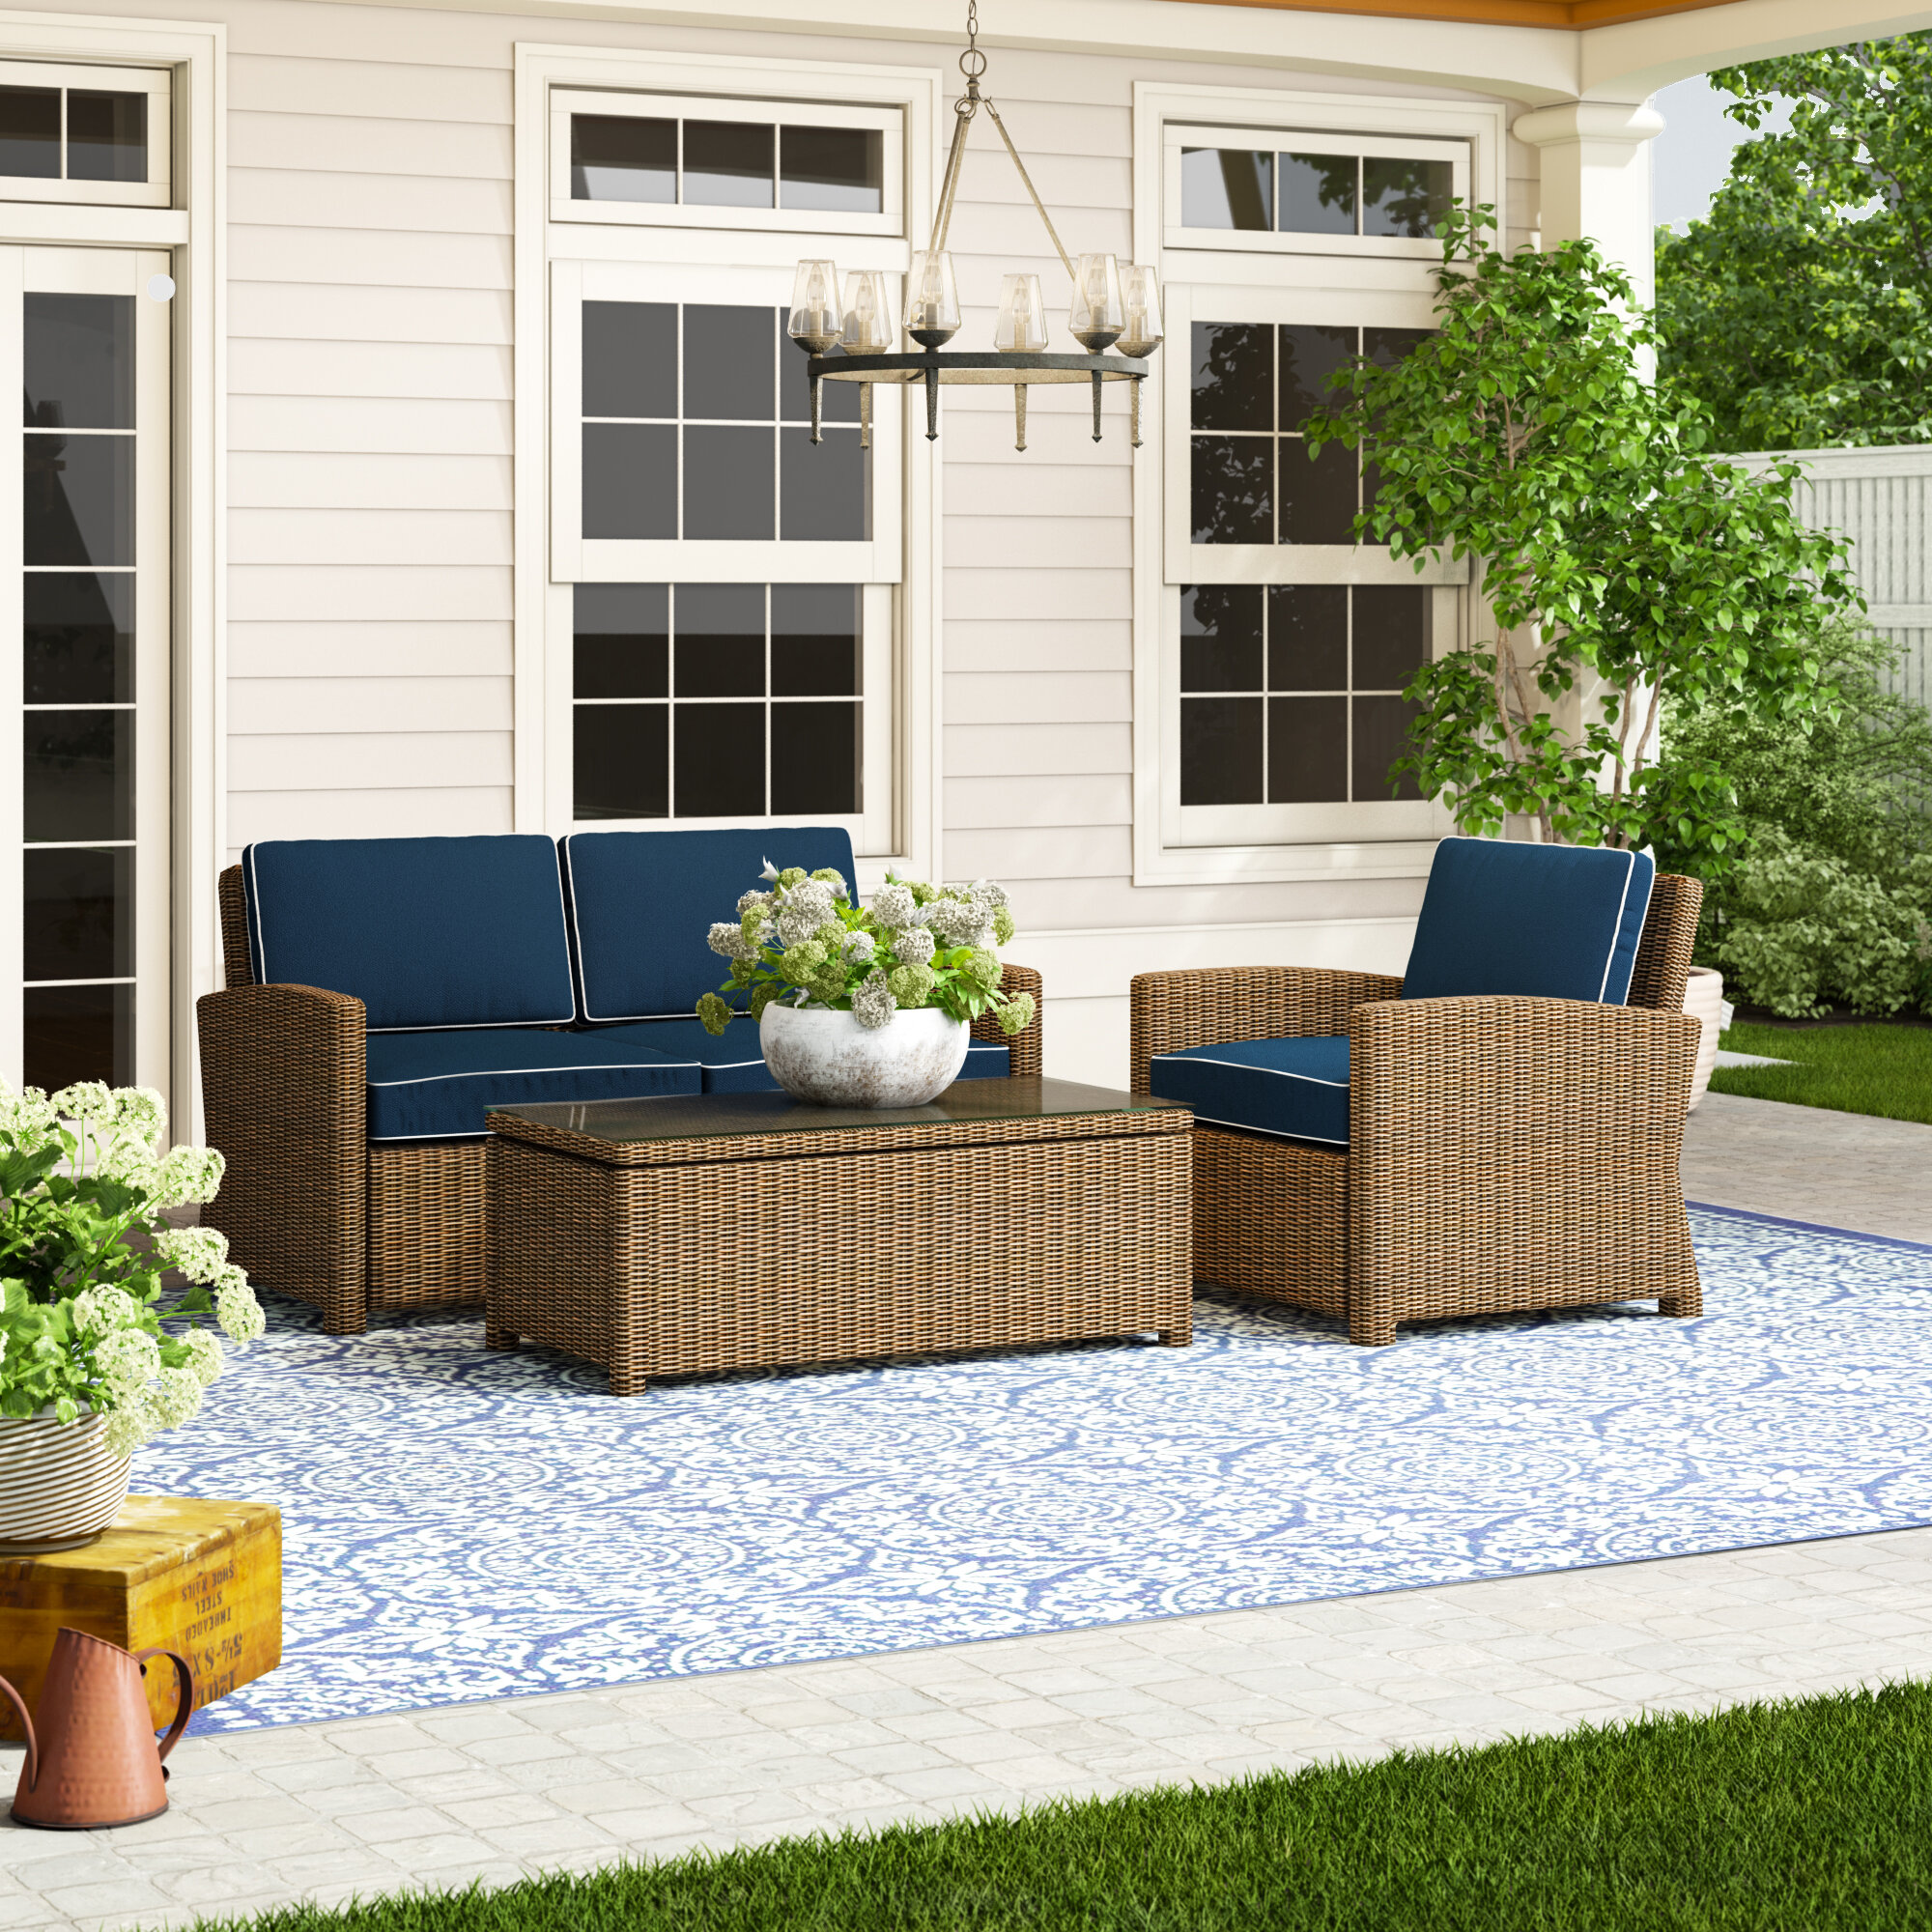 Lawson 4 Piece Rattan Sofa Seating Group With Cushions Reviews Birch Lane